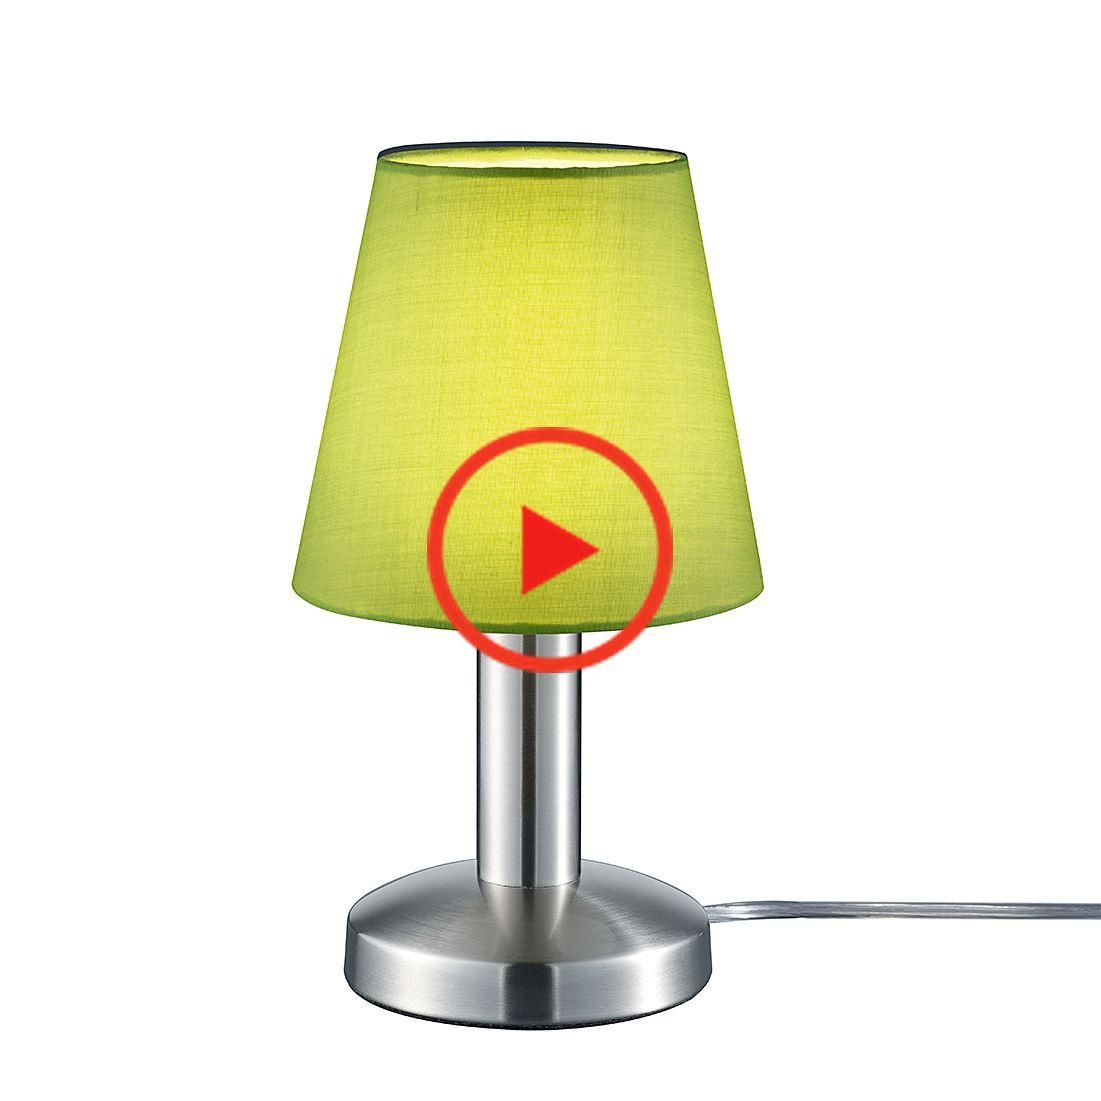 Lampe De Table Touch Me In 2020 Table Lamp Lamp Novelty Lamp